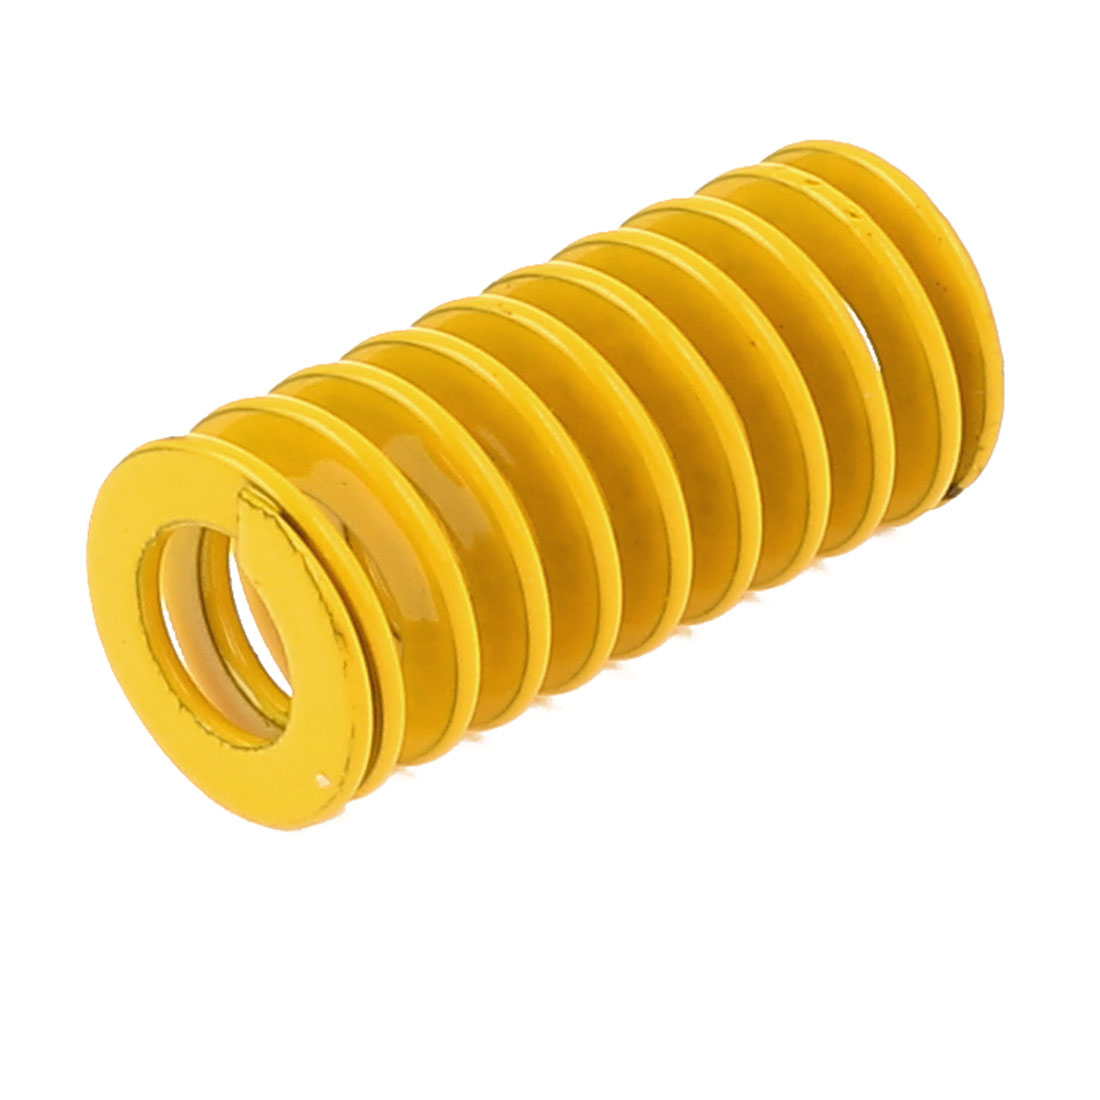 12mm x 6mm x 25mm Cylinder Section Mold Mould Die Spring Yellow